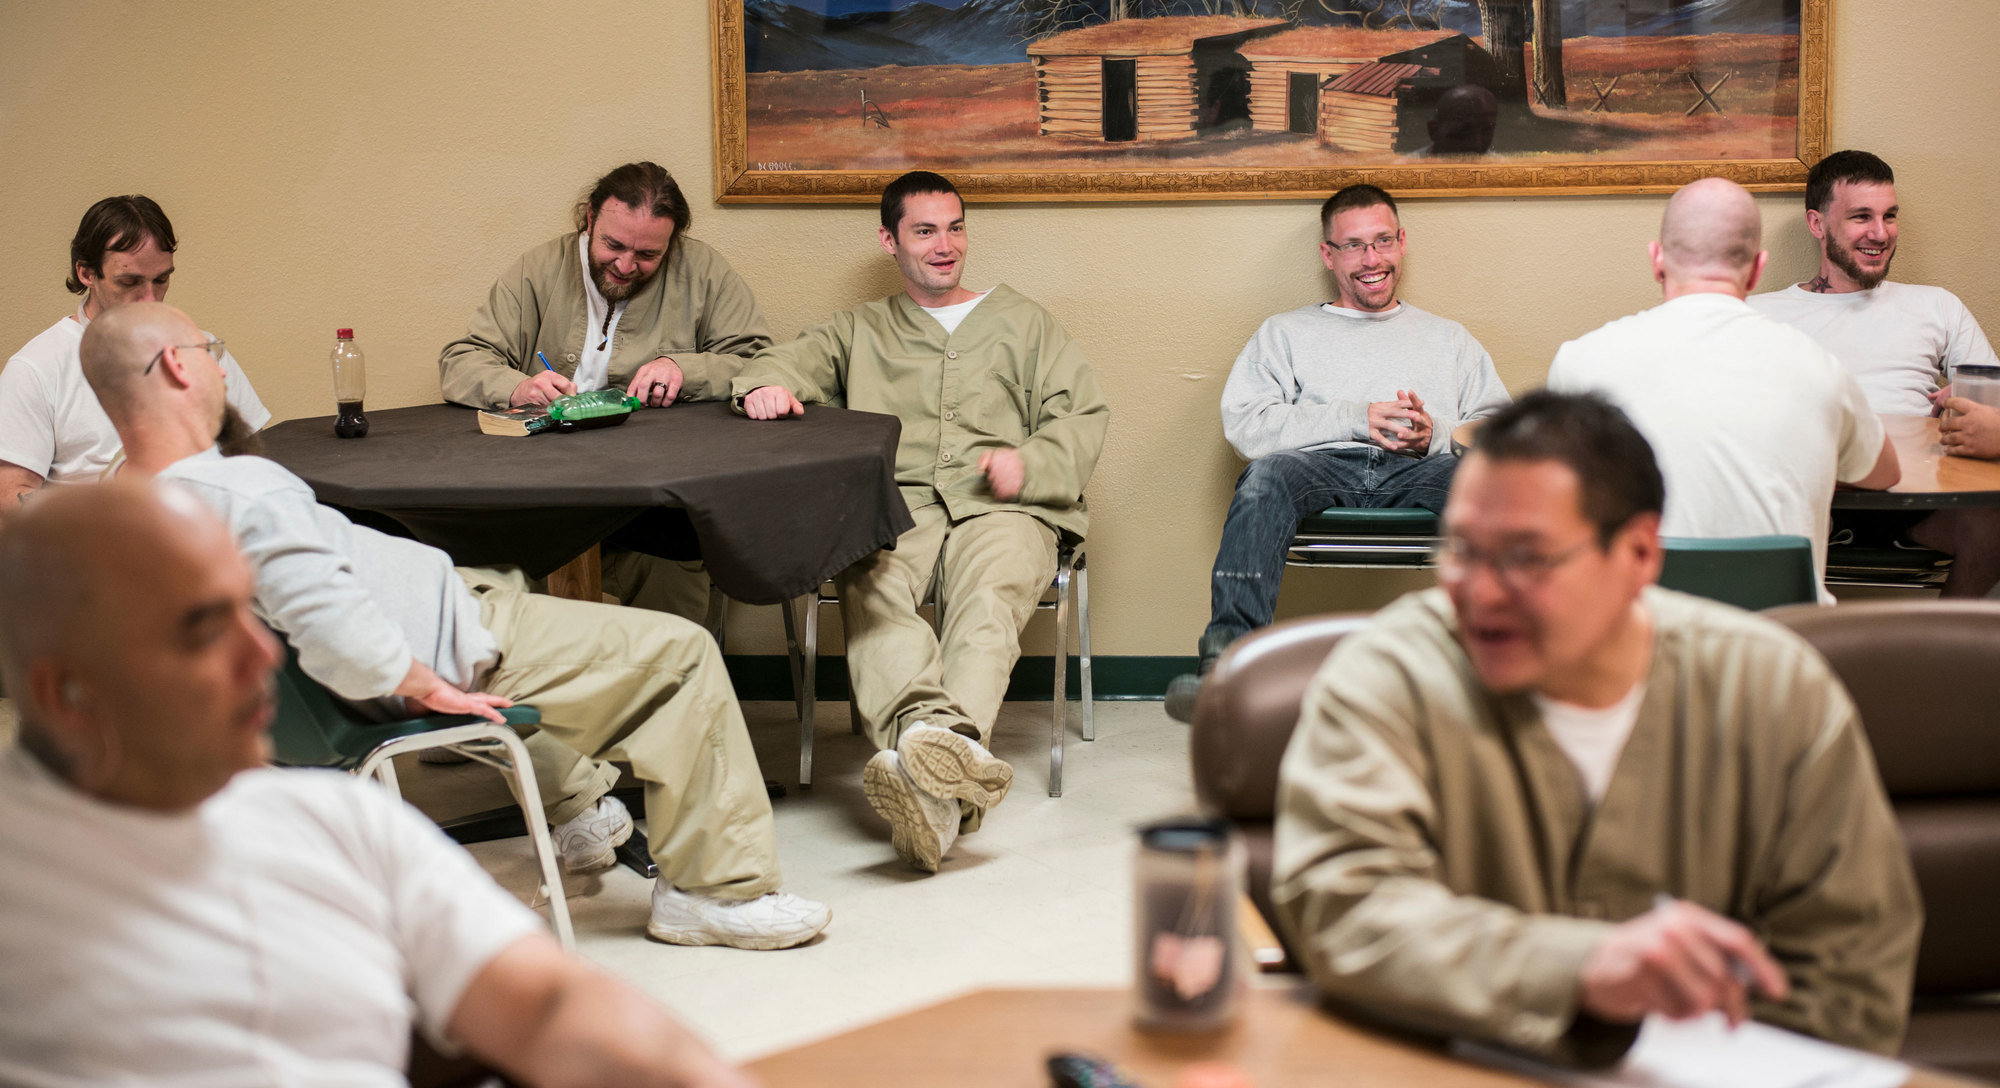 Inmates watch television at the Missouri River Correctional Center, a minimum-security facility in Bismarck, N.D., which has based some of its programs on those found in a prison in Norway.